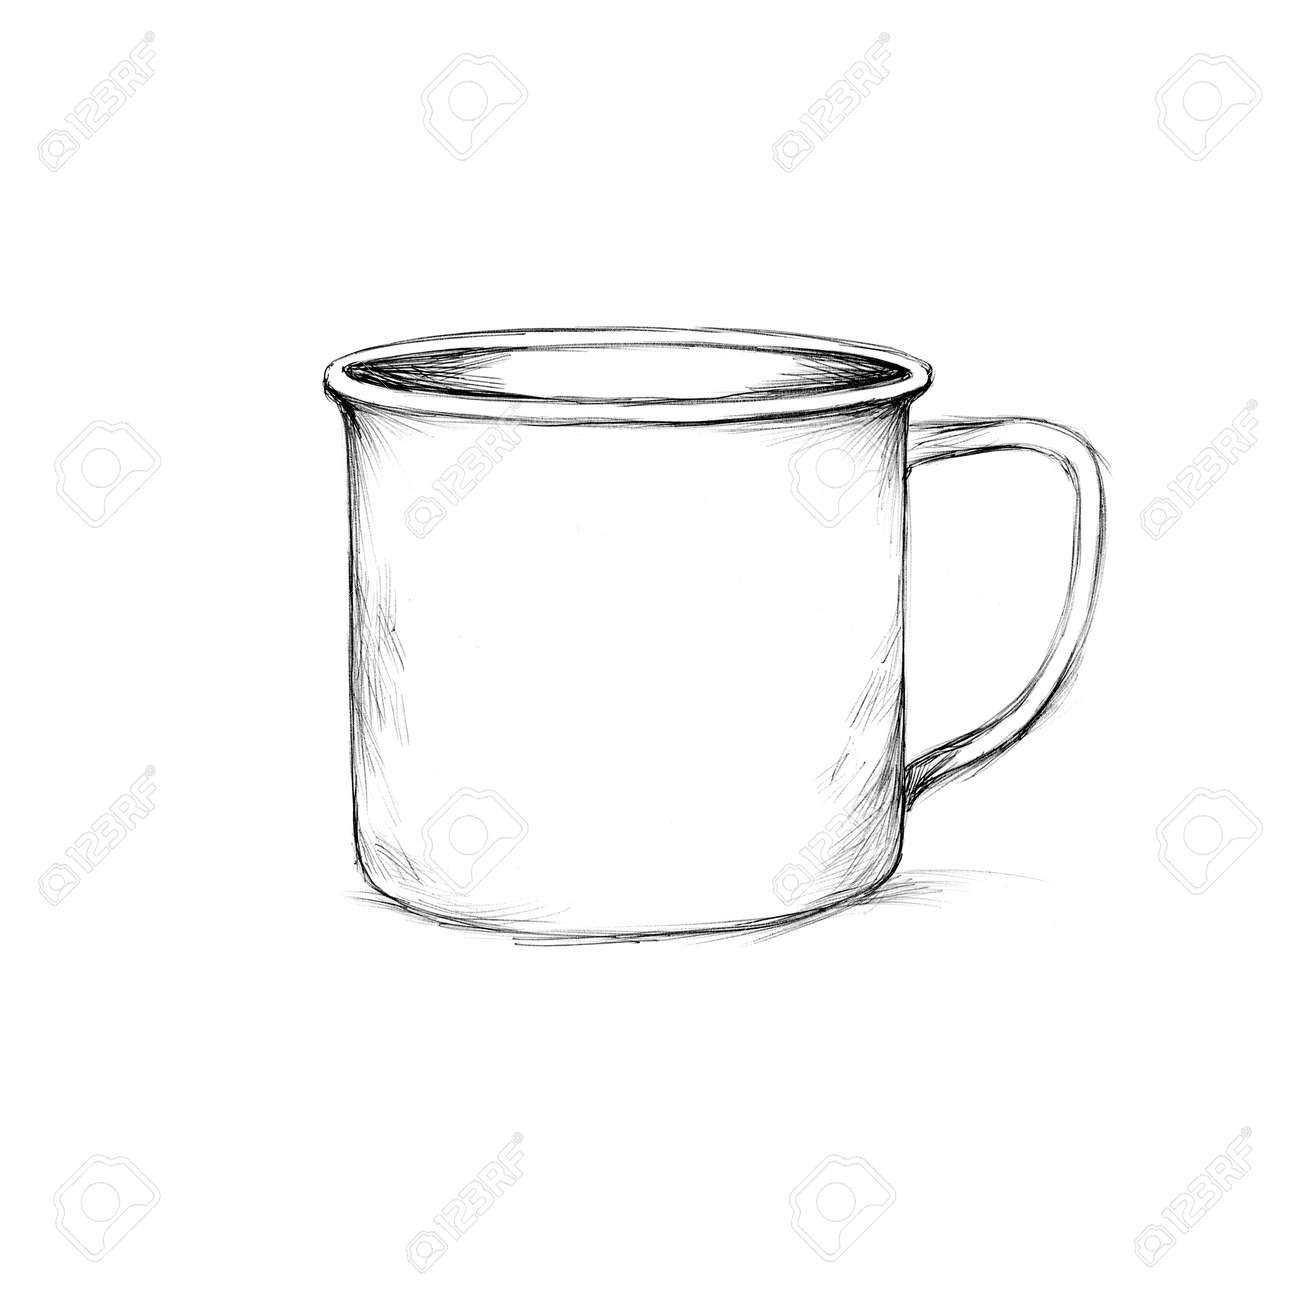 Illustration Of A Simple Enamel Mug Stock Photo Picture And Royalty Free Image Image 138721493